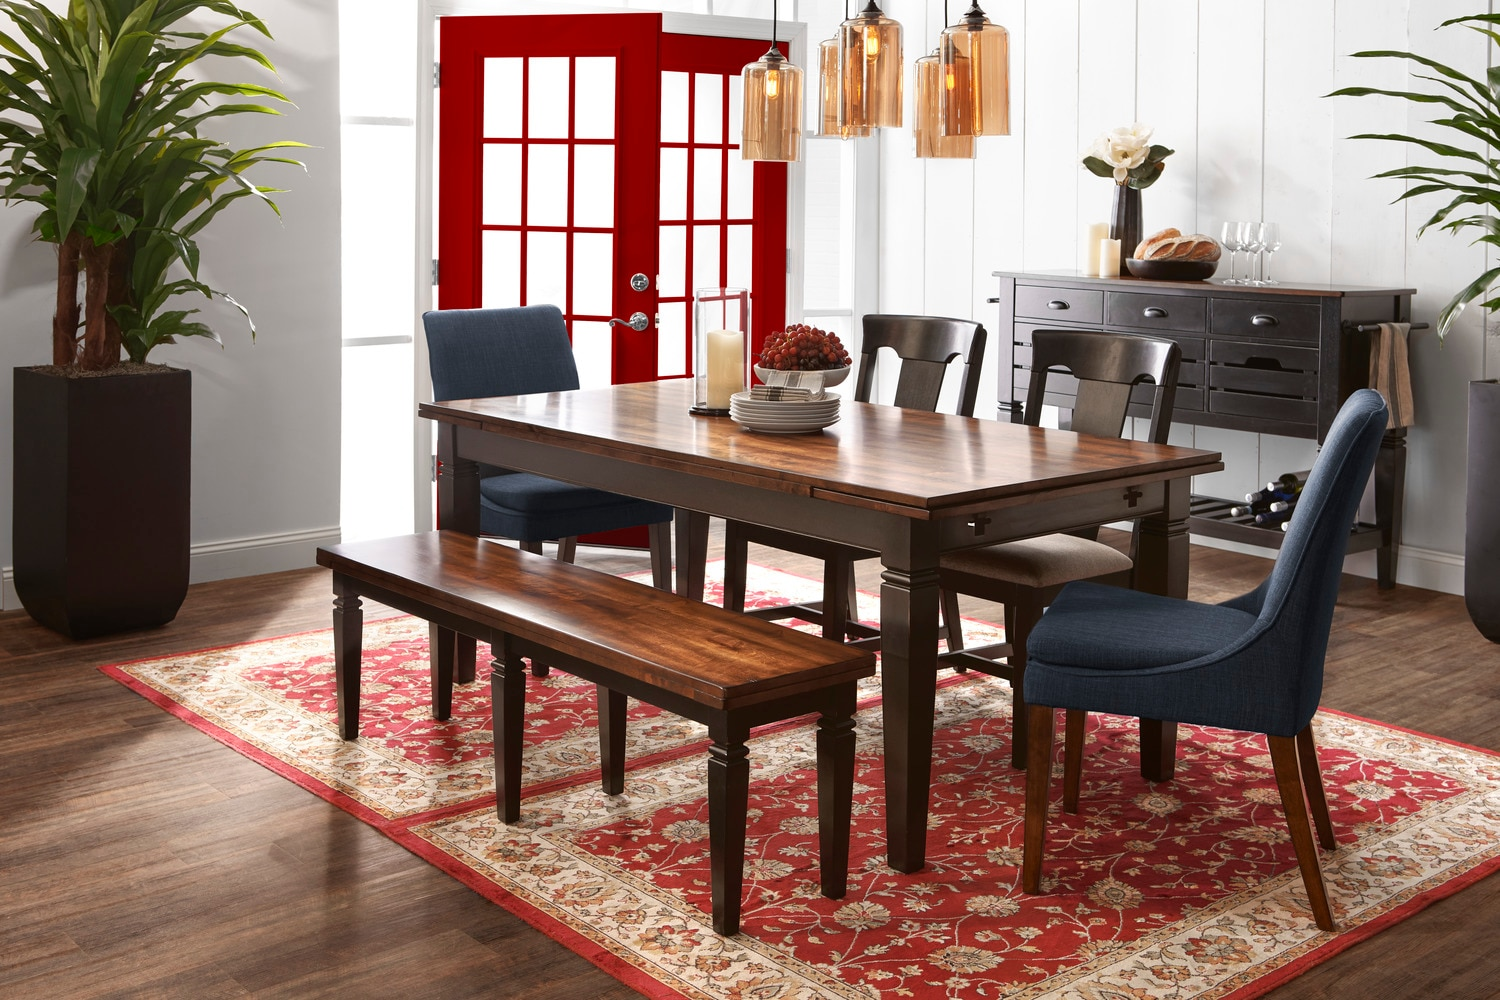 Dining table black hover touch to zoom click to change image